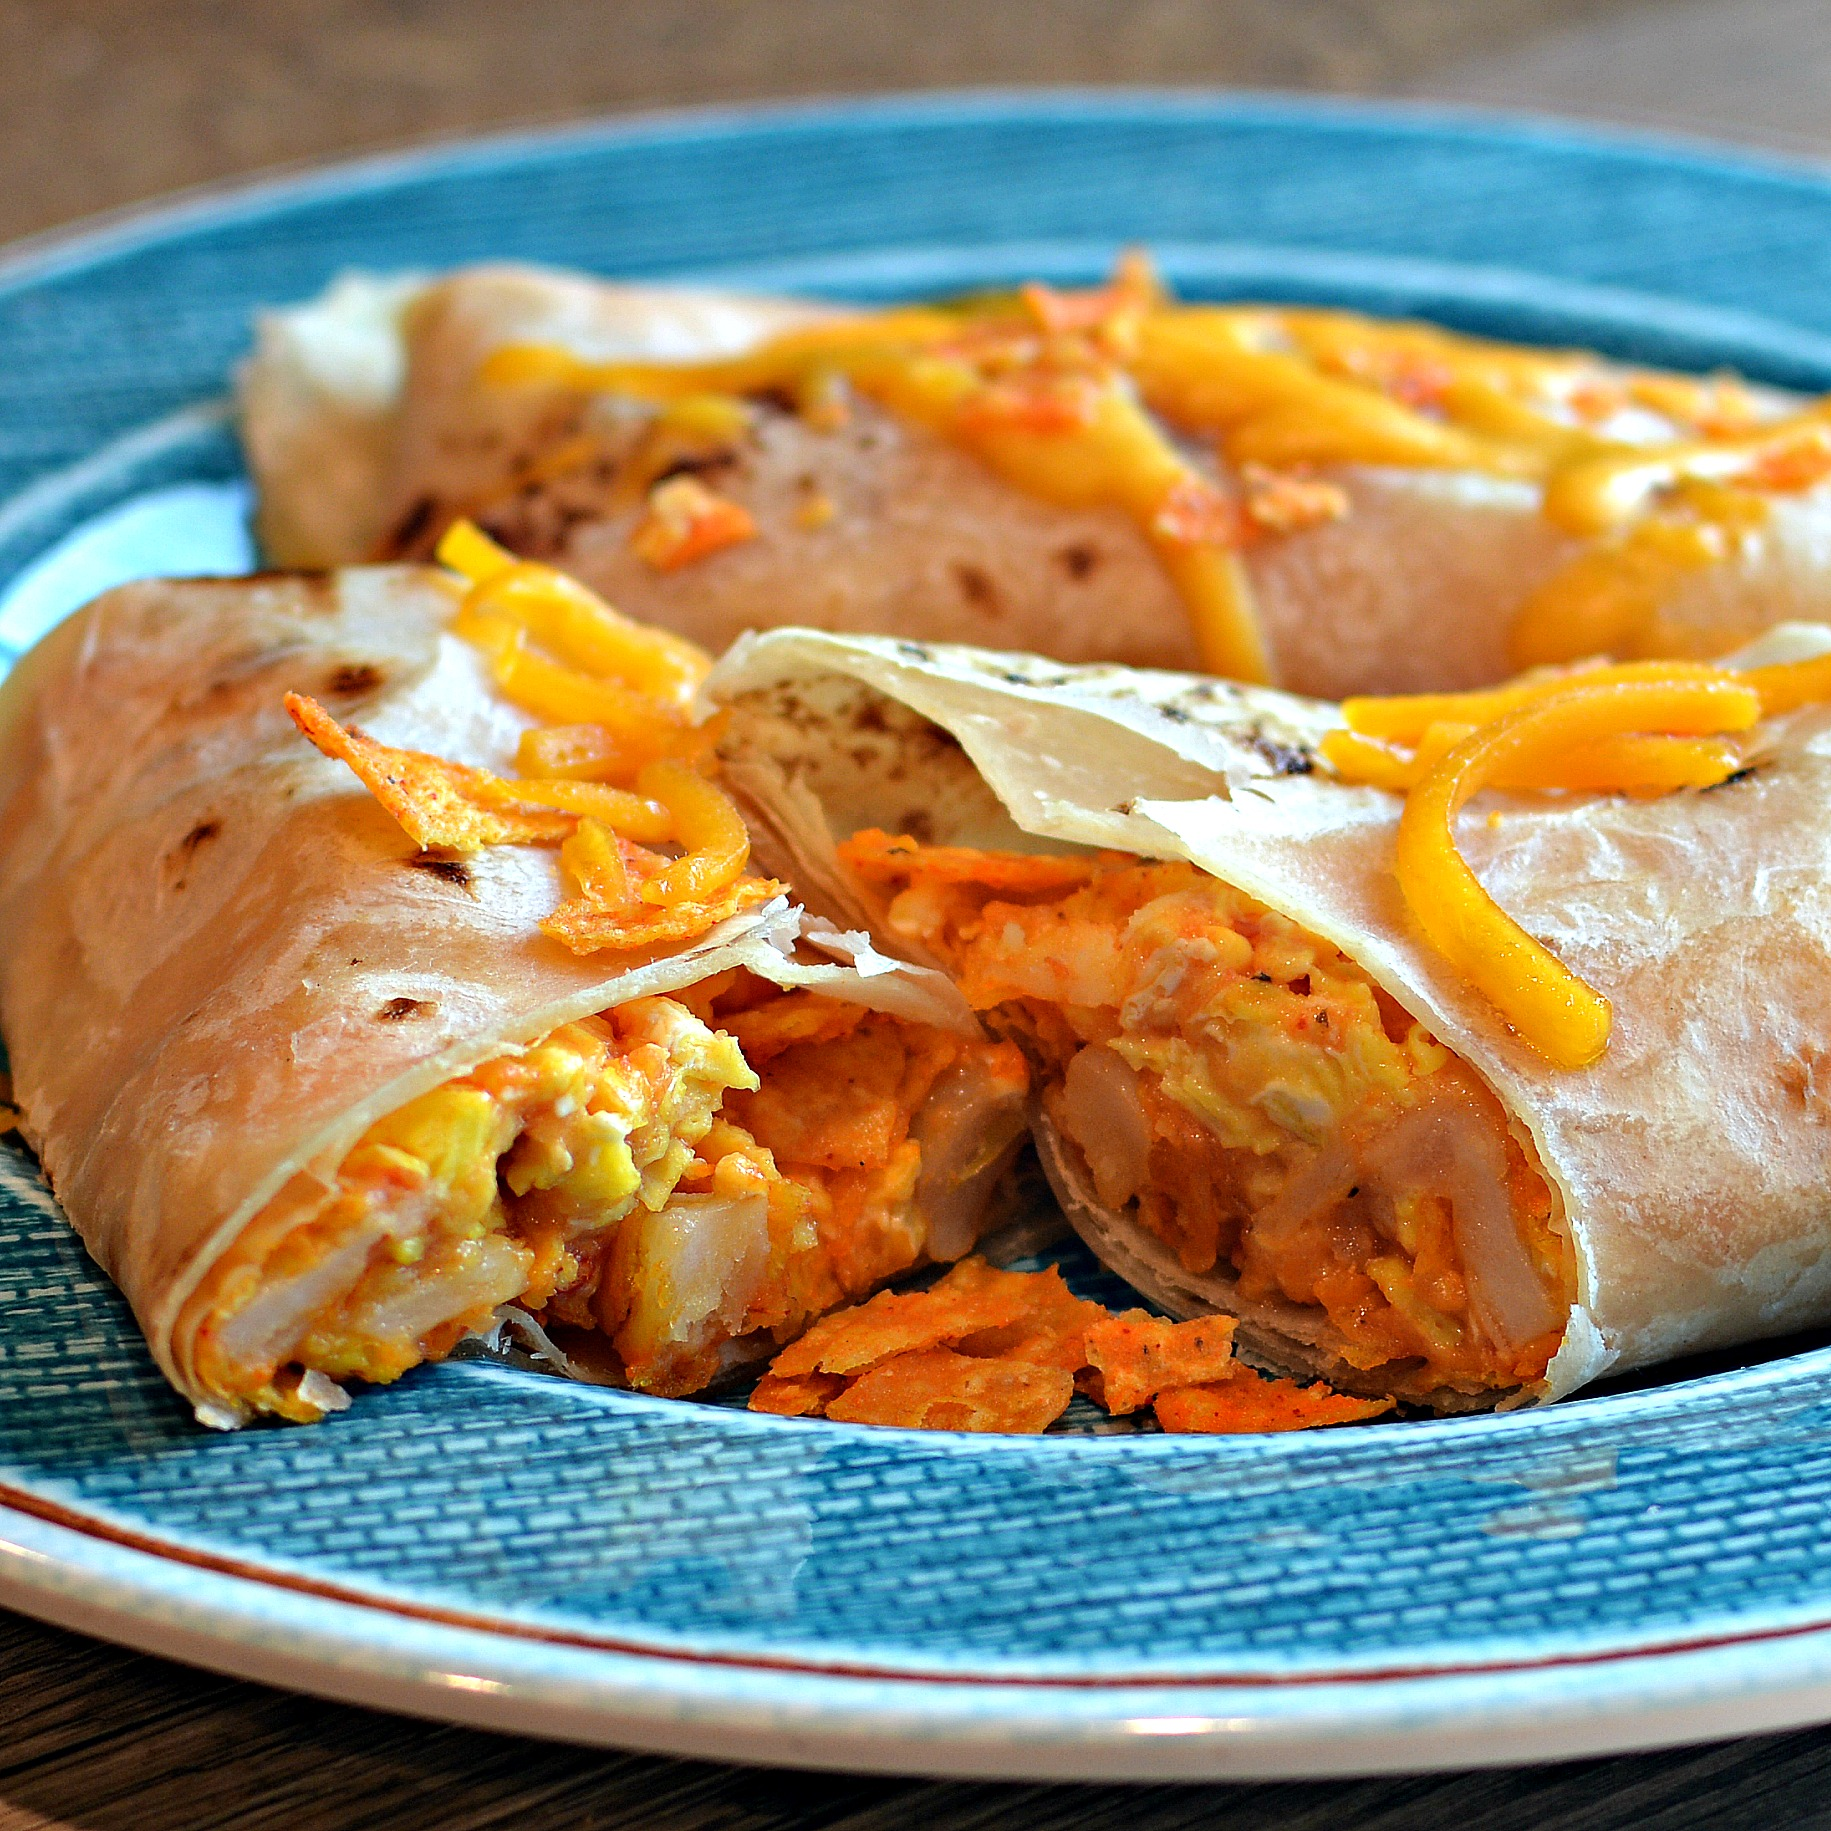 Nacho Daughter-In-Law's Cheesy Breakfast Burrito